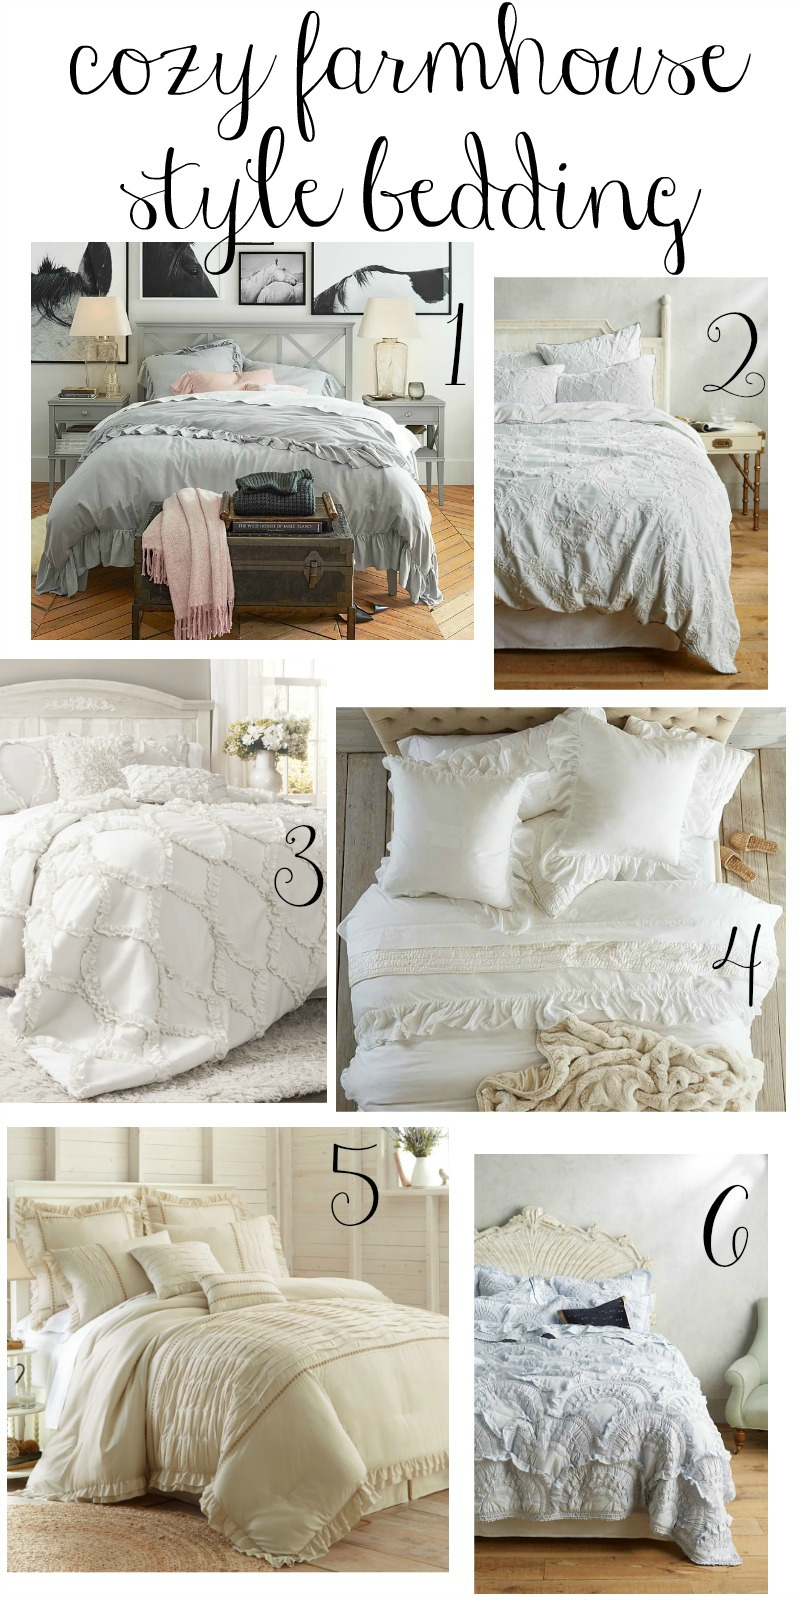 Cozy farmhouse style bedding for Farmhouse style bed